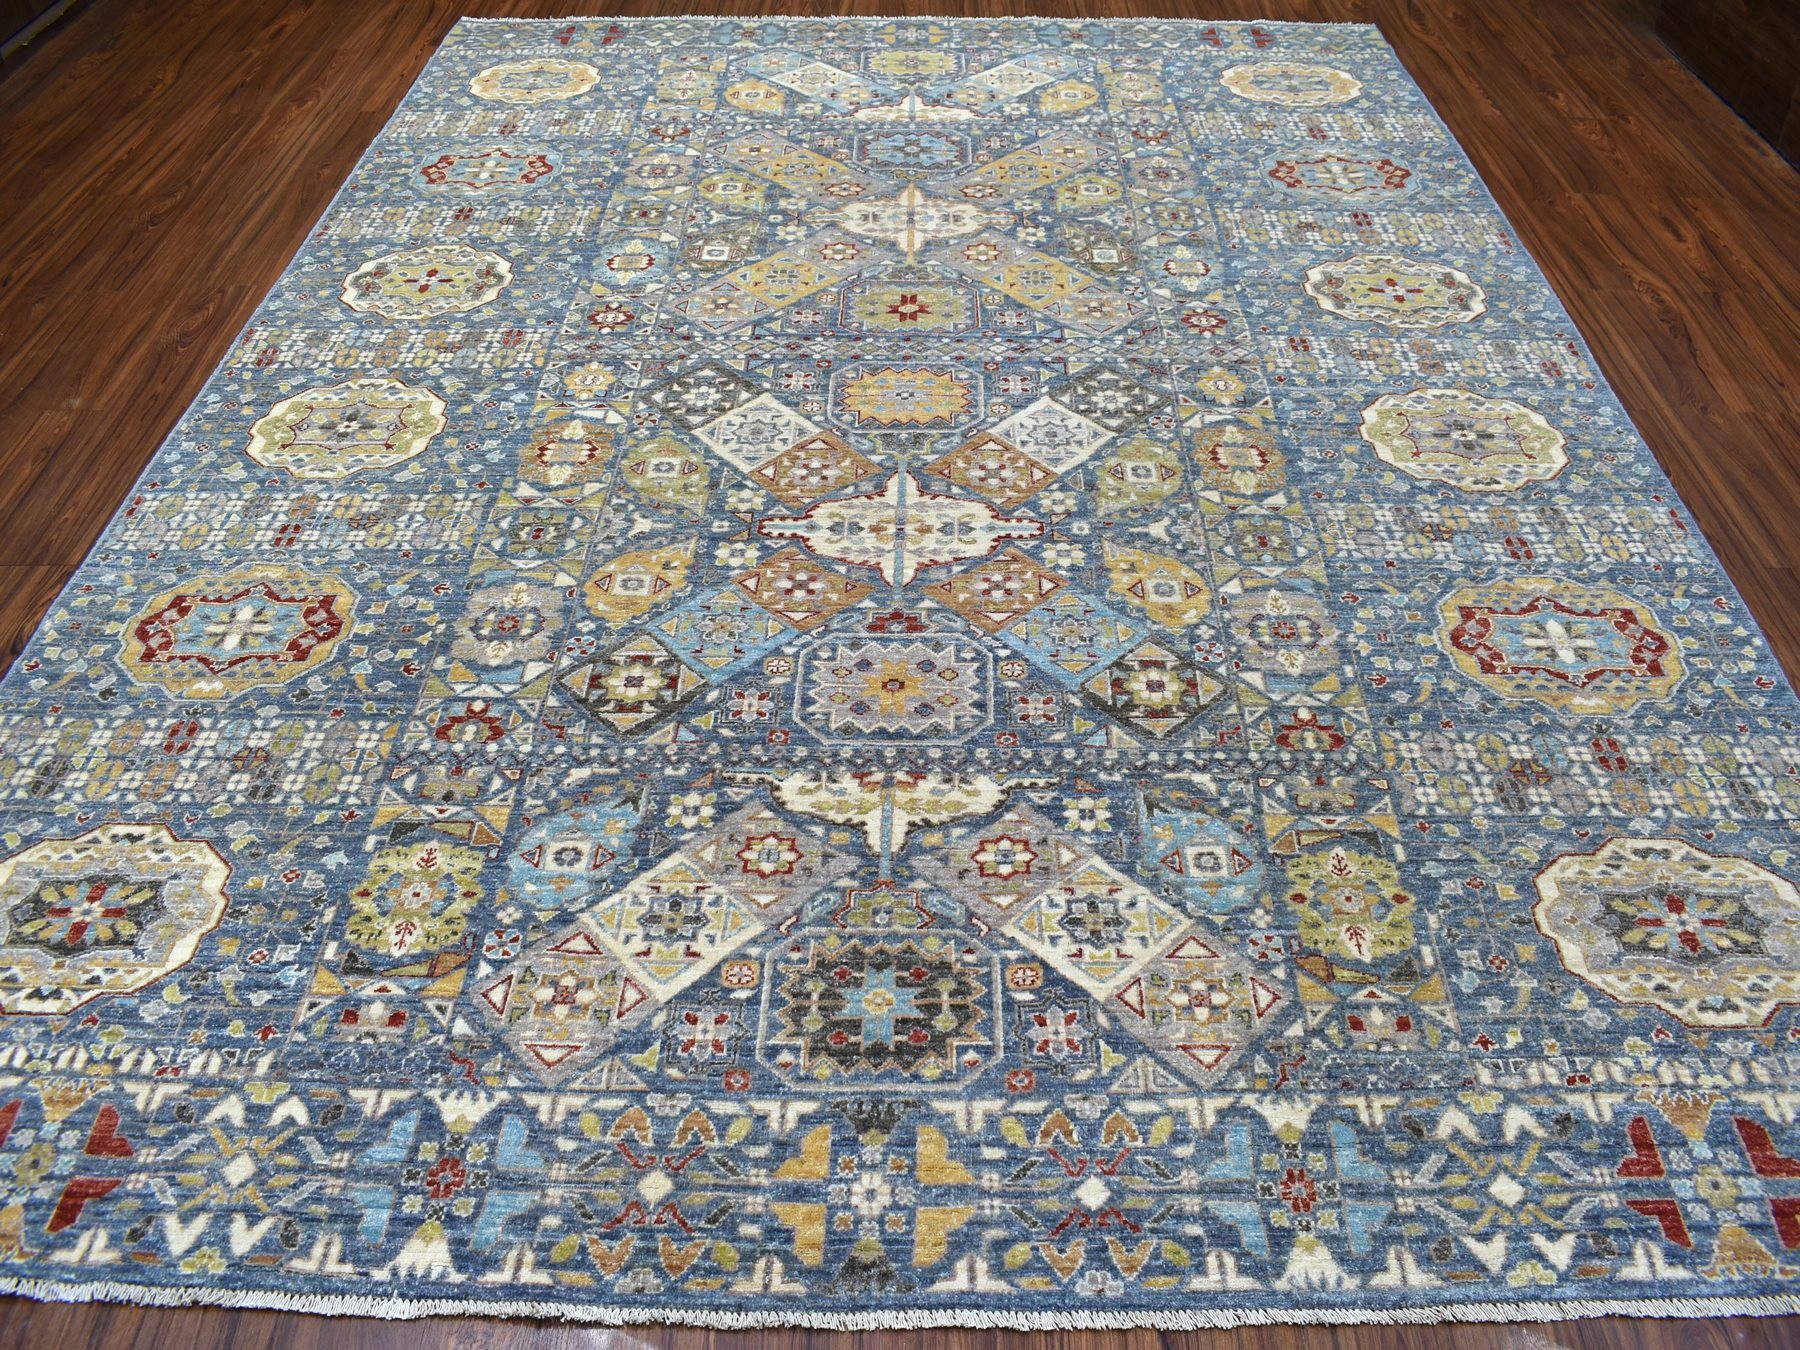 Transitional Wool Hand-Knotted Area Rug 9'2